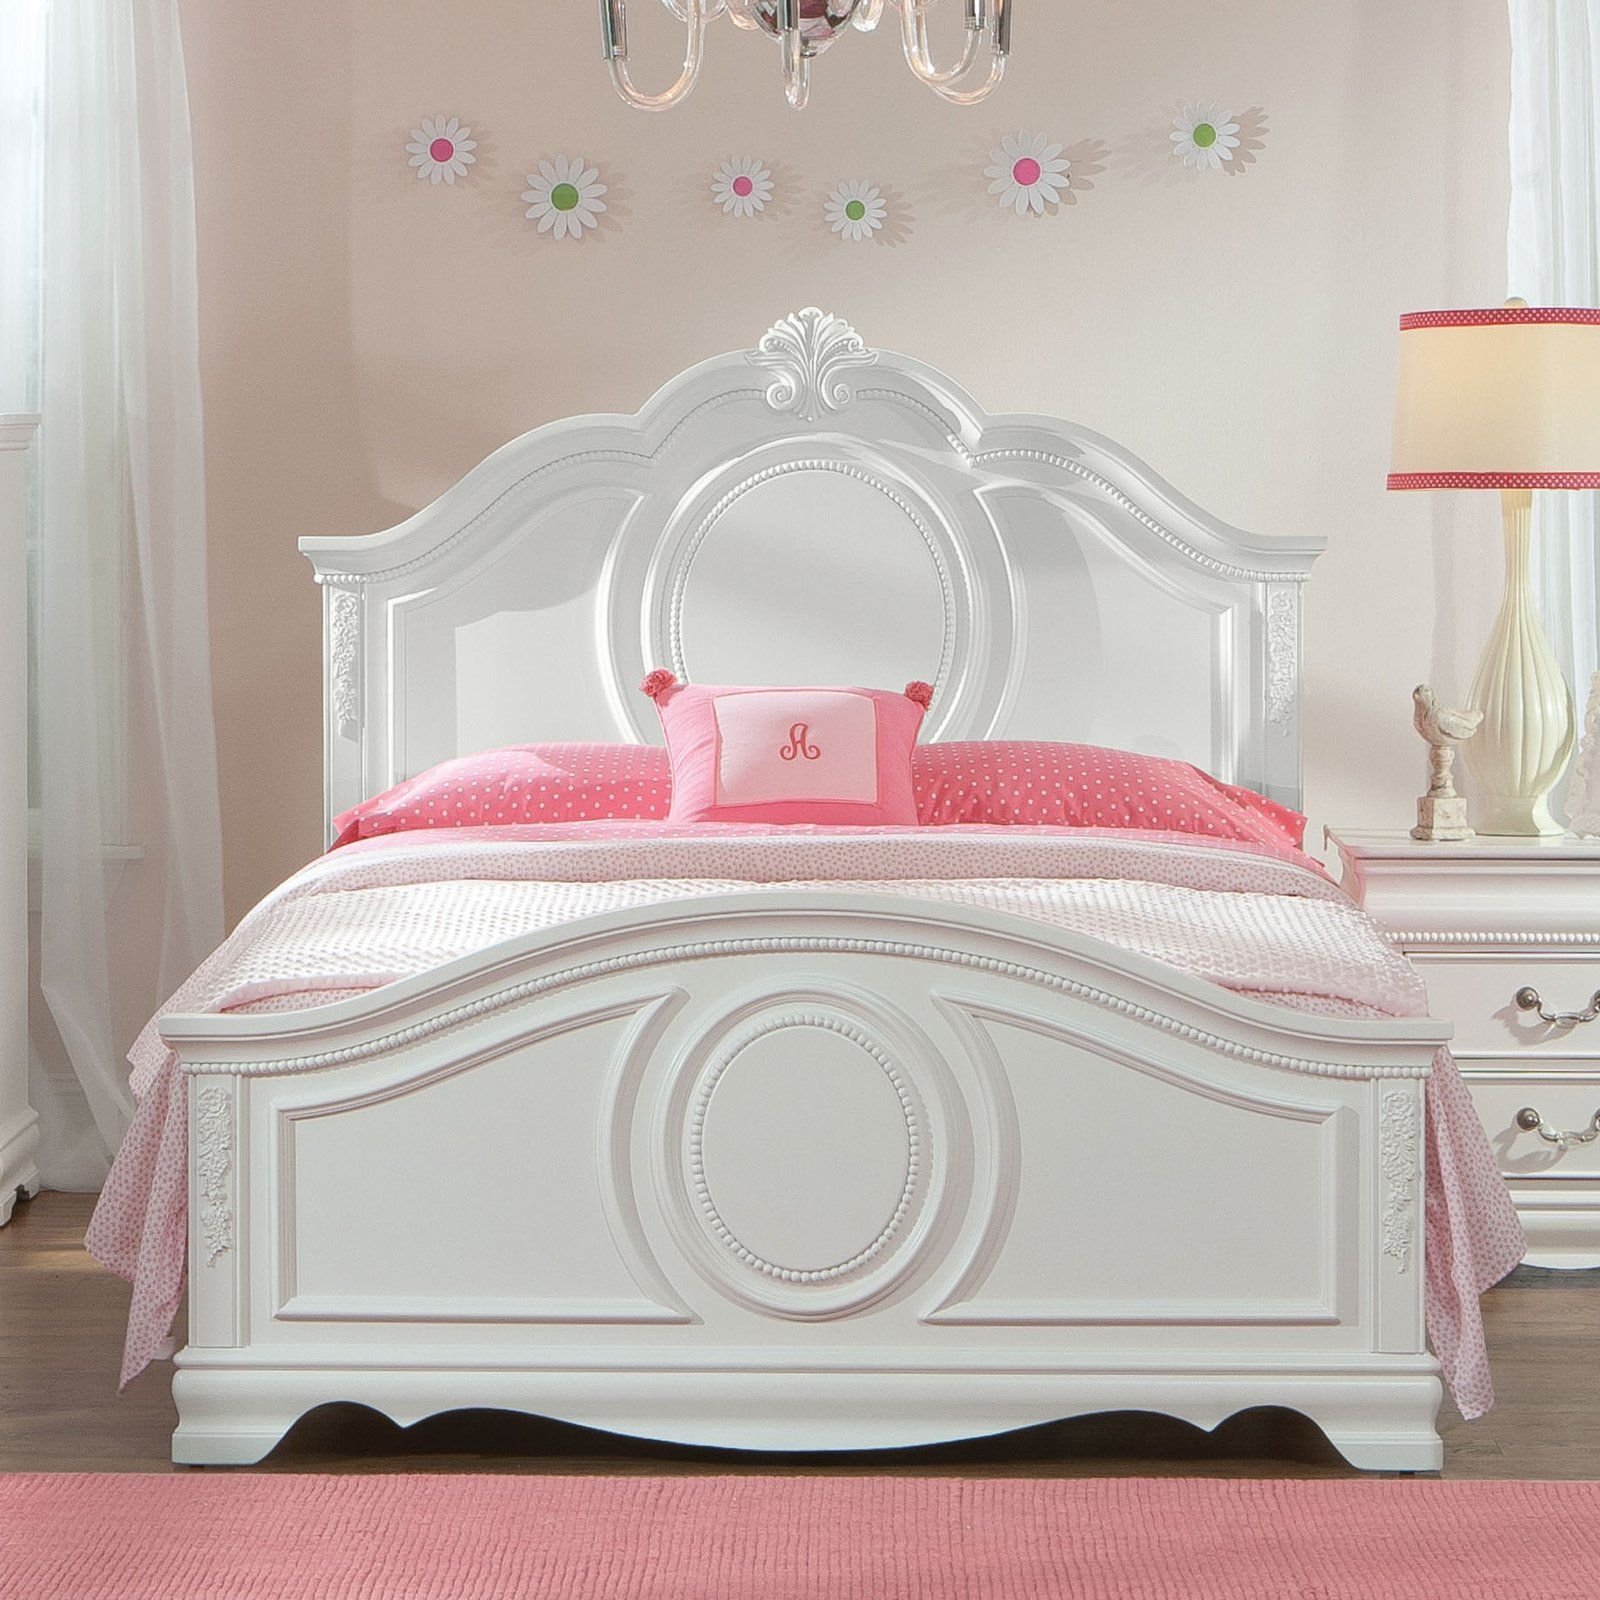 Standard Furniture Jessica Panel Bed White Size Twin Girls Bedroom Sets Bedroom Sets Queen Standard Furniture